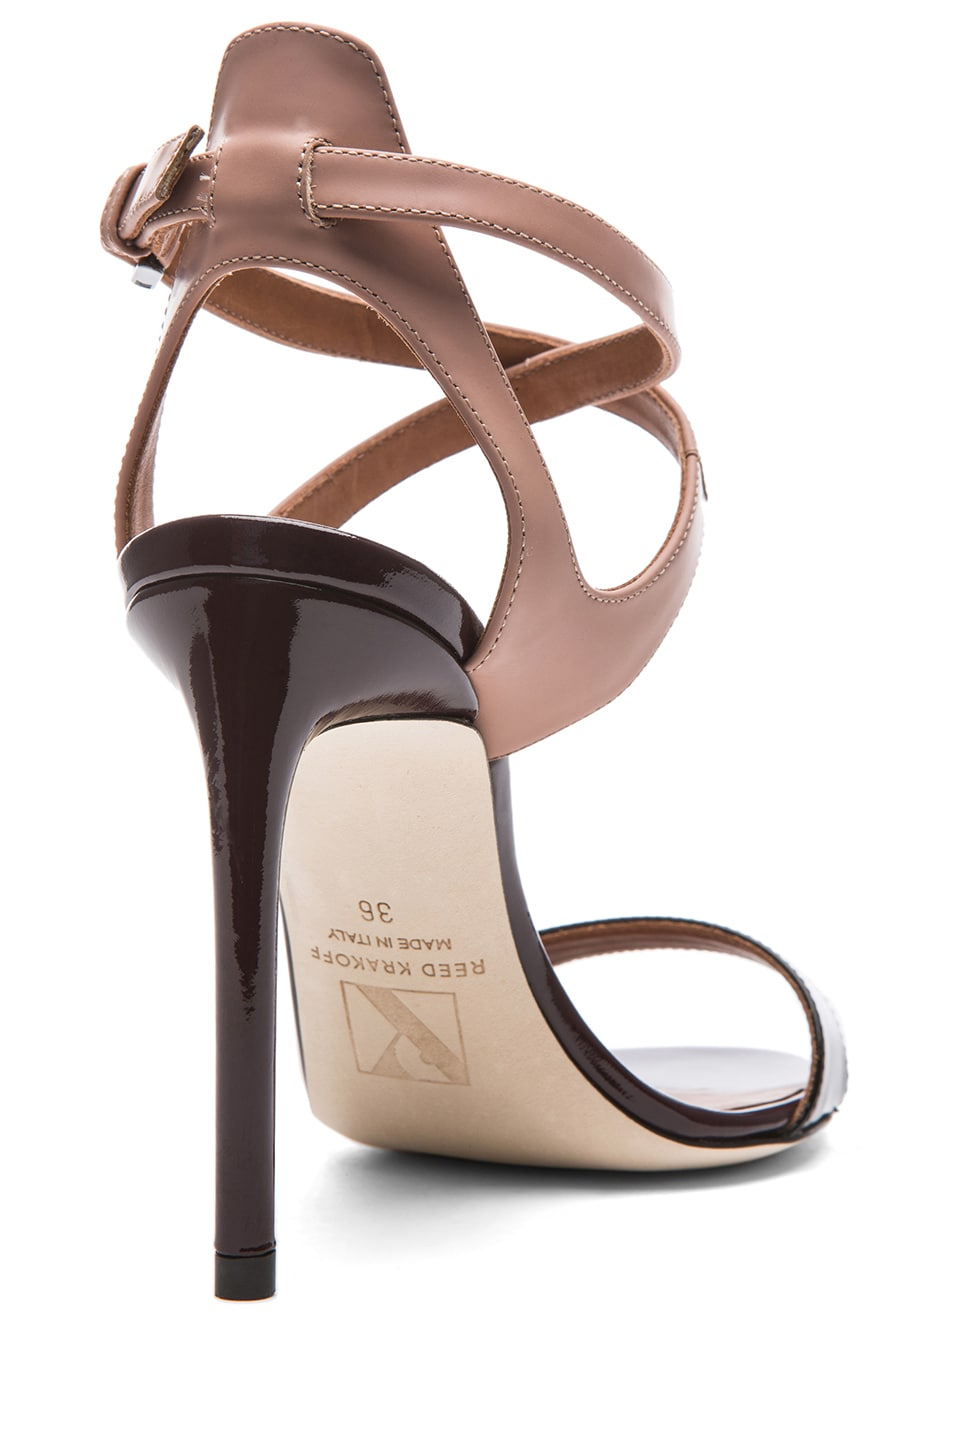 Image 3 of Reed Krakoff Glossy Leather Ankle Harness Sandals in Black & Nude